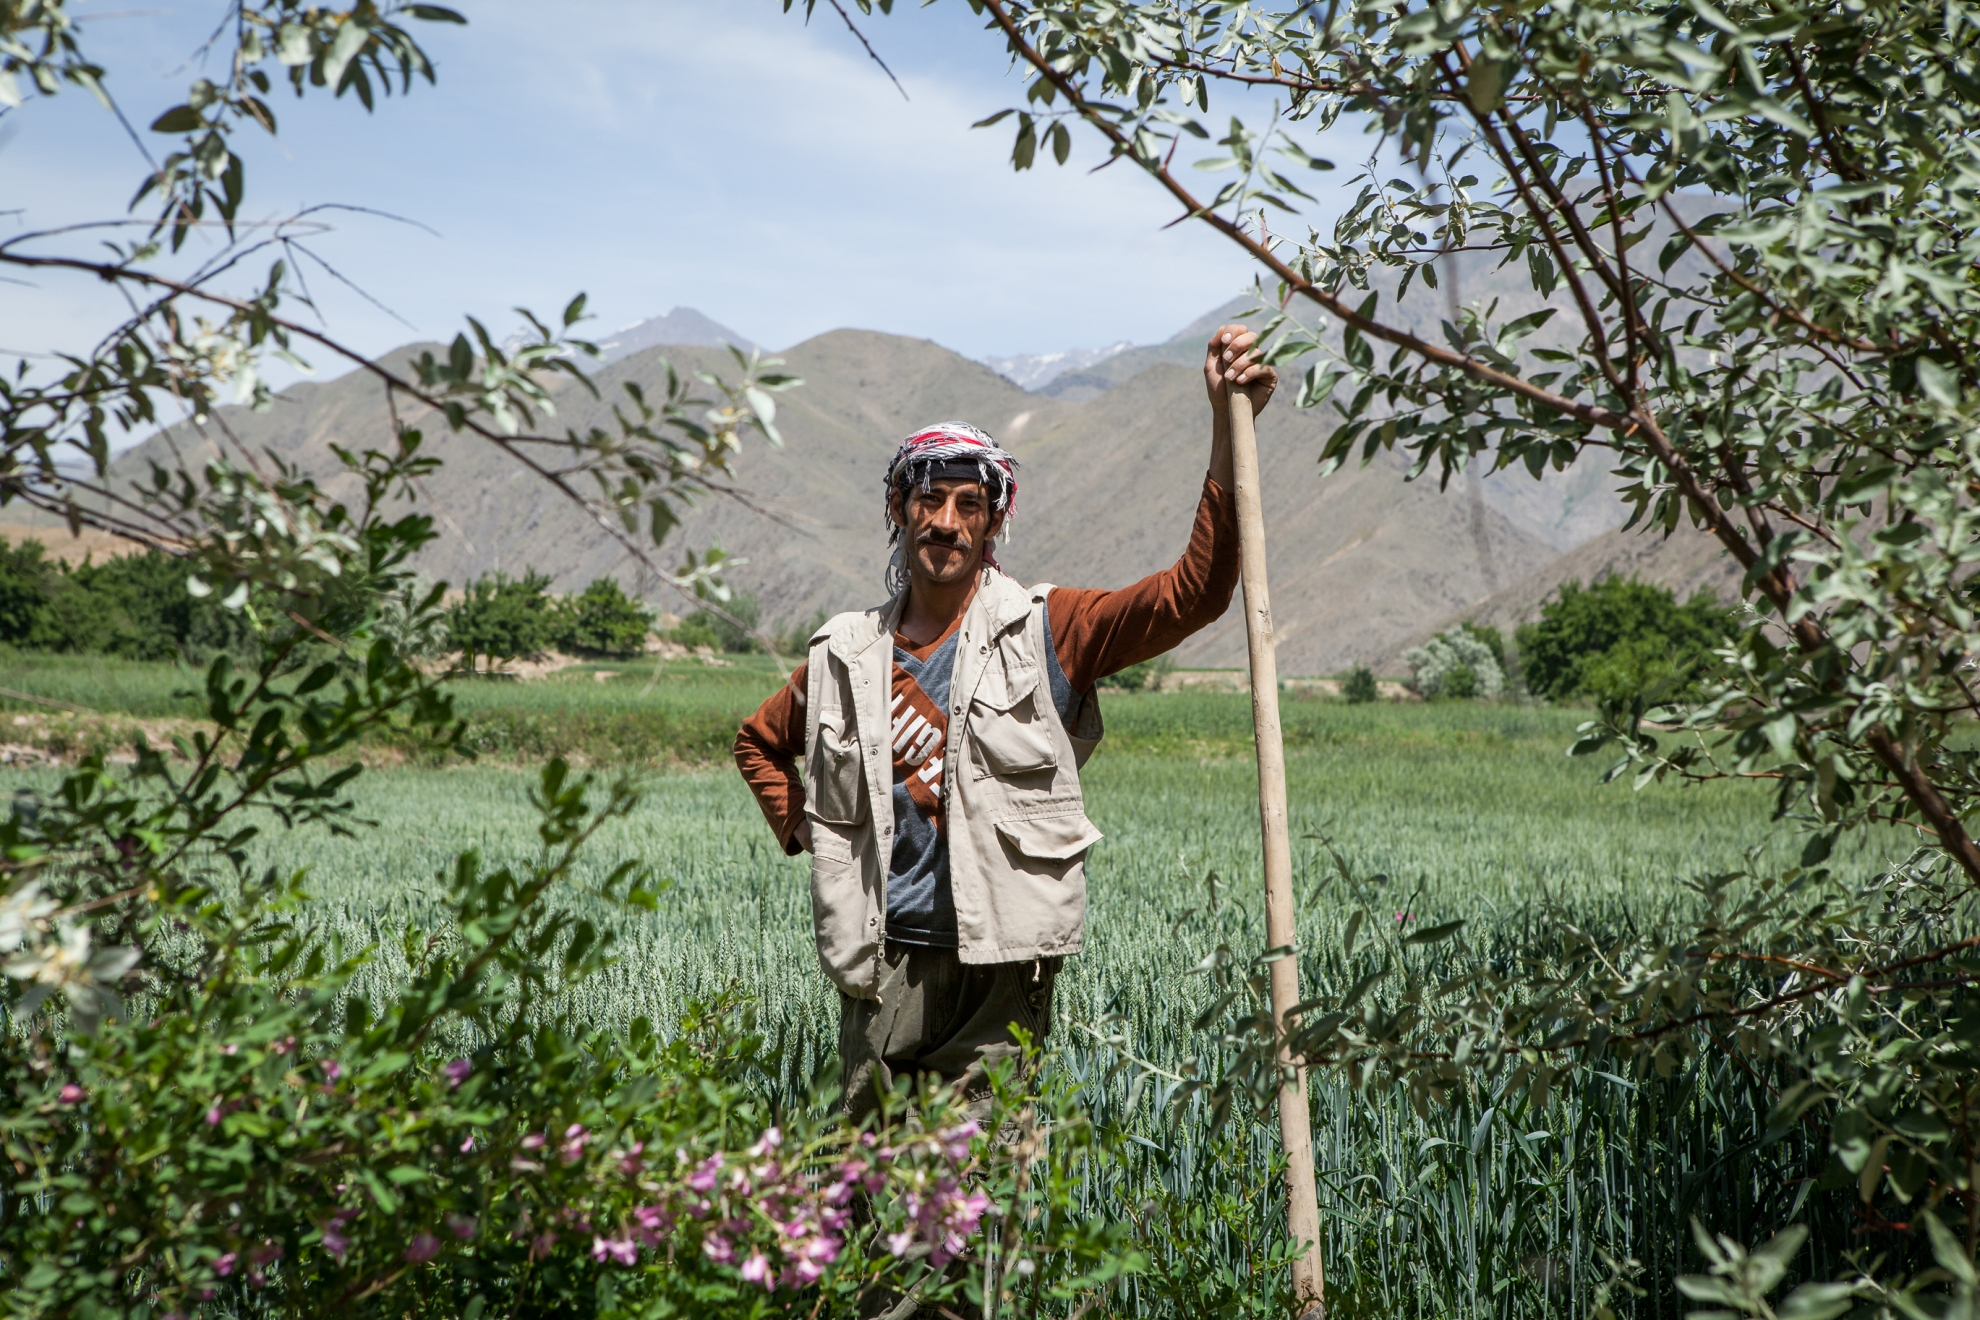 The farmer in this photo had his field demined three years ago. Now he can cultivate the land and sustain his family. Photo: Danish Refugee Council/Erick Gerstner